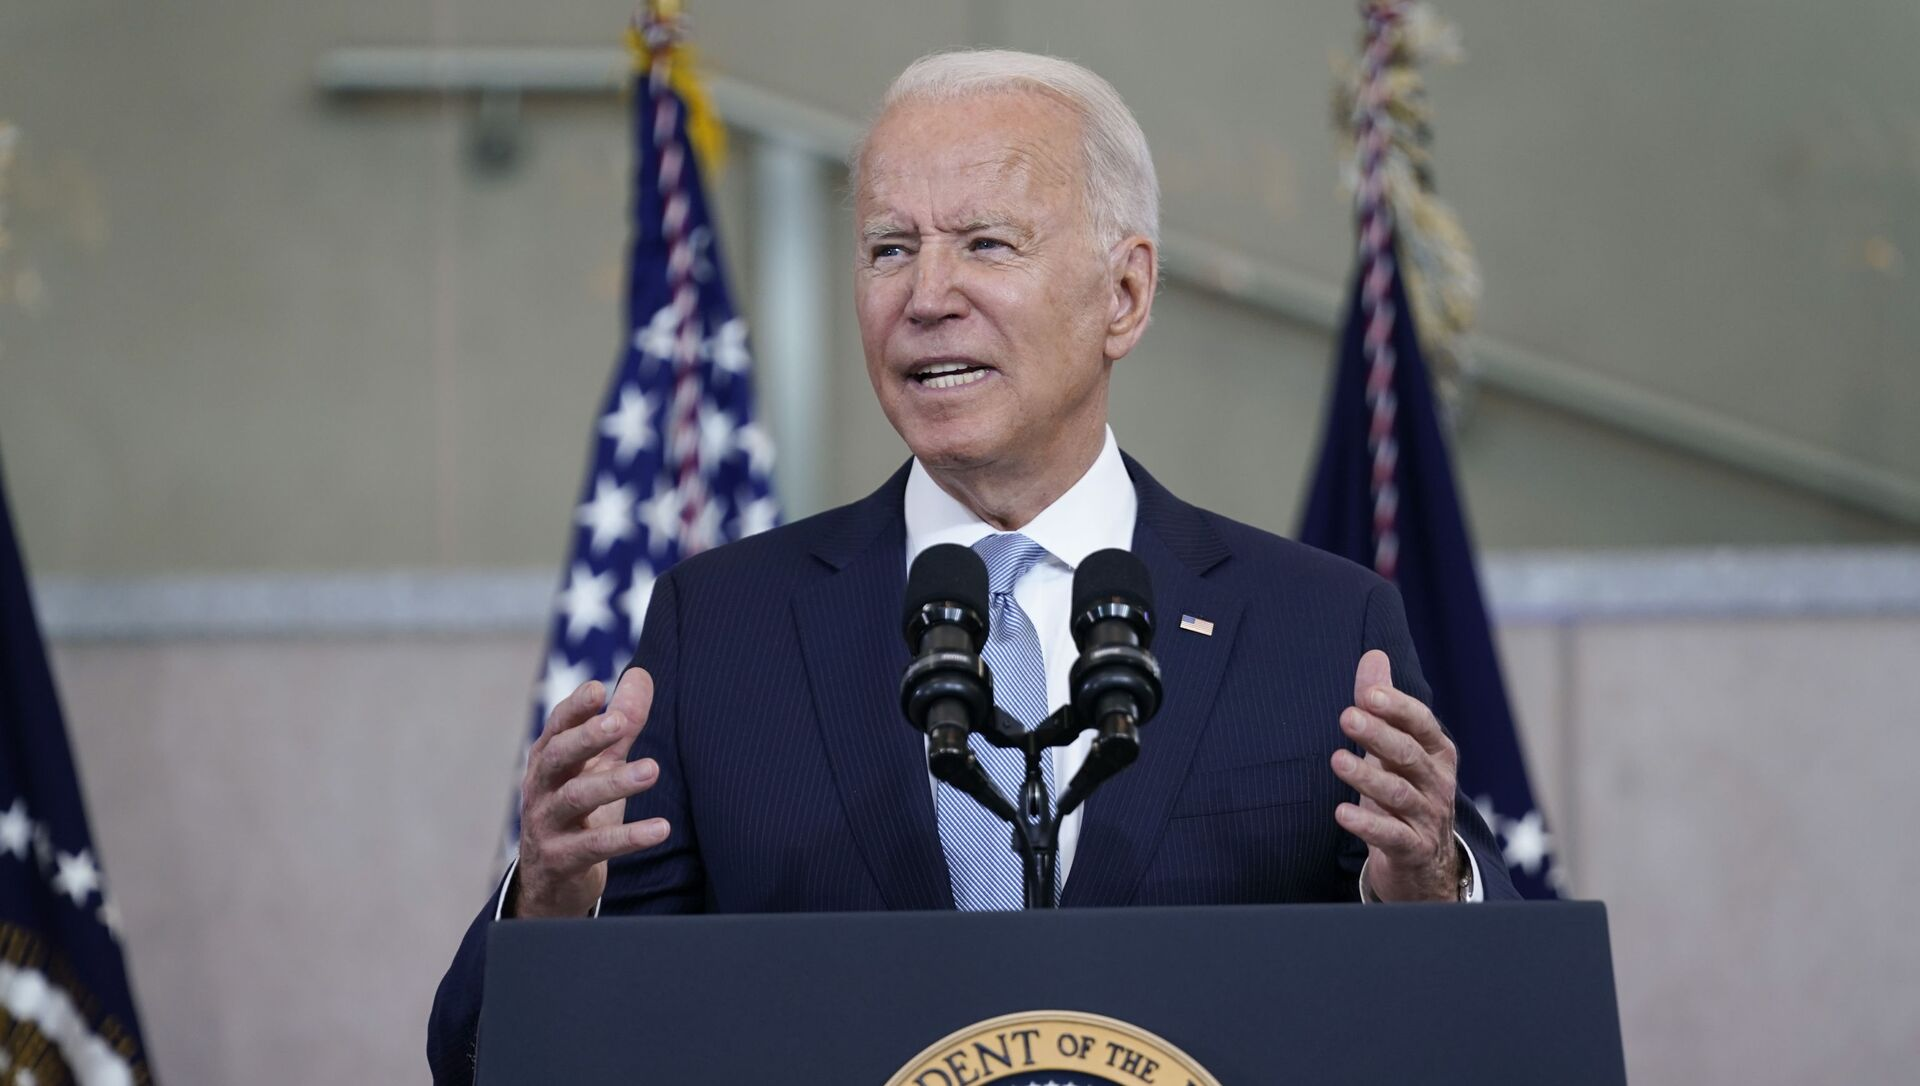 President Joe Biden delivers a speech on voting rights at the National Constitution Center, Tuesday, July 13, 2021, in Philadelphia. - Sputnik 日本, 1920, 22.07.2021